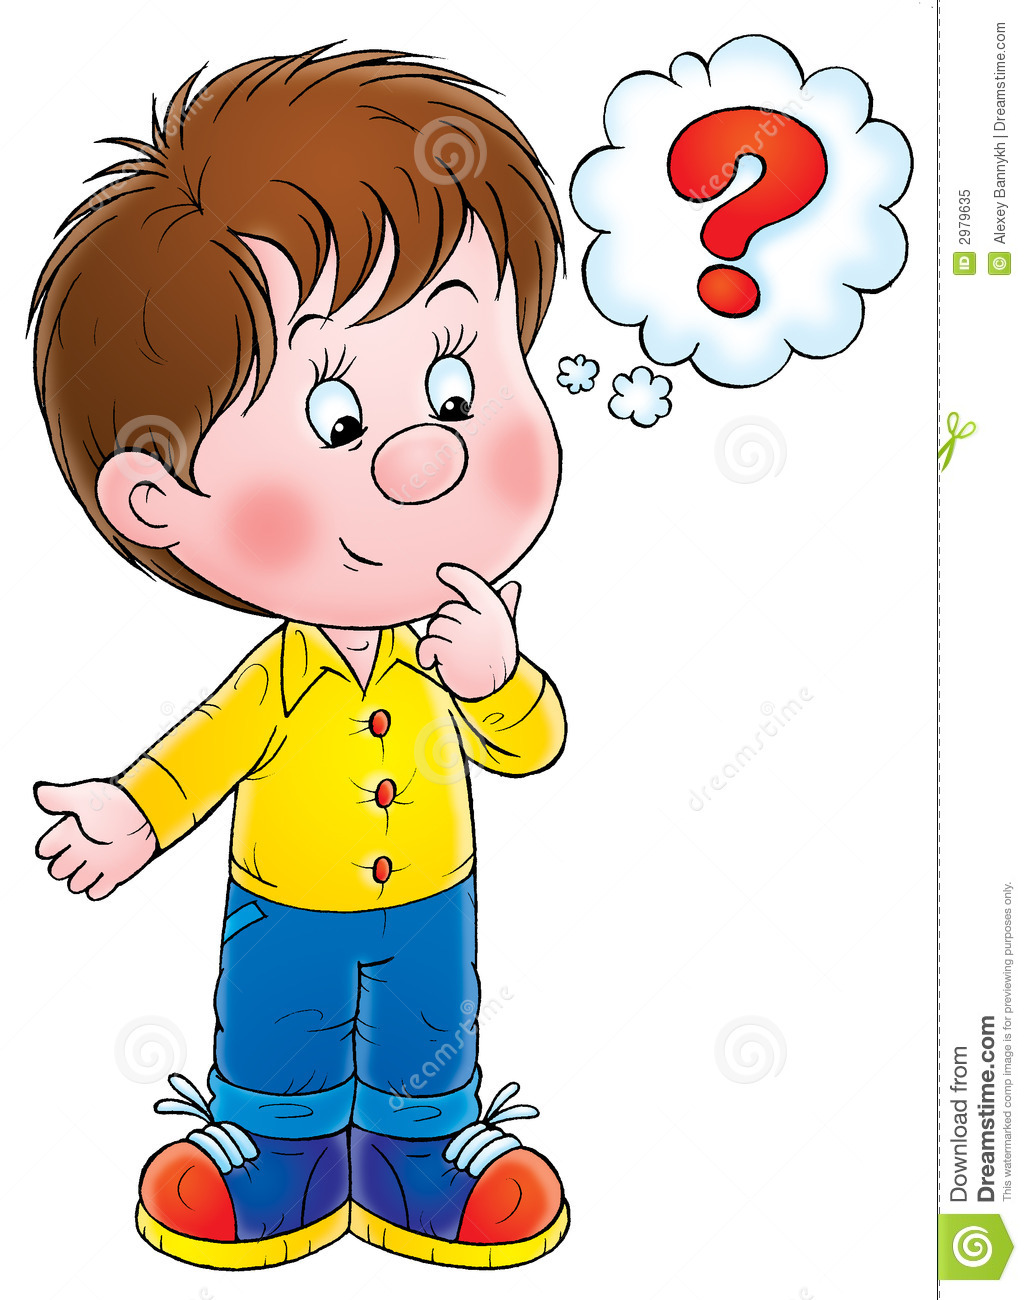 question mark clip art clipart panda free clipart images rh clipartpanda com questions clip art for presentation questions clip art for presentation